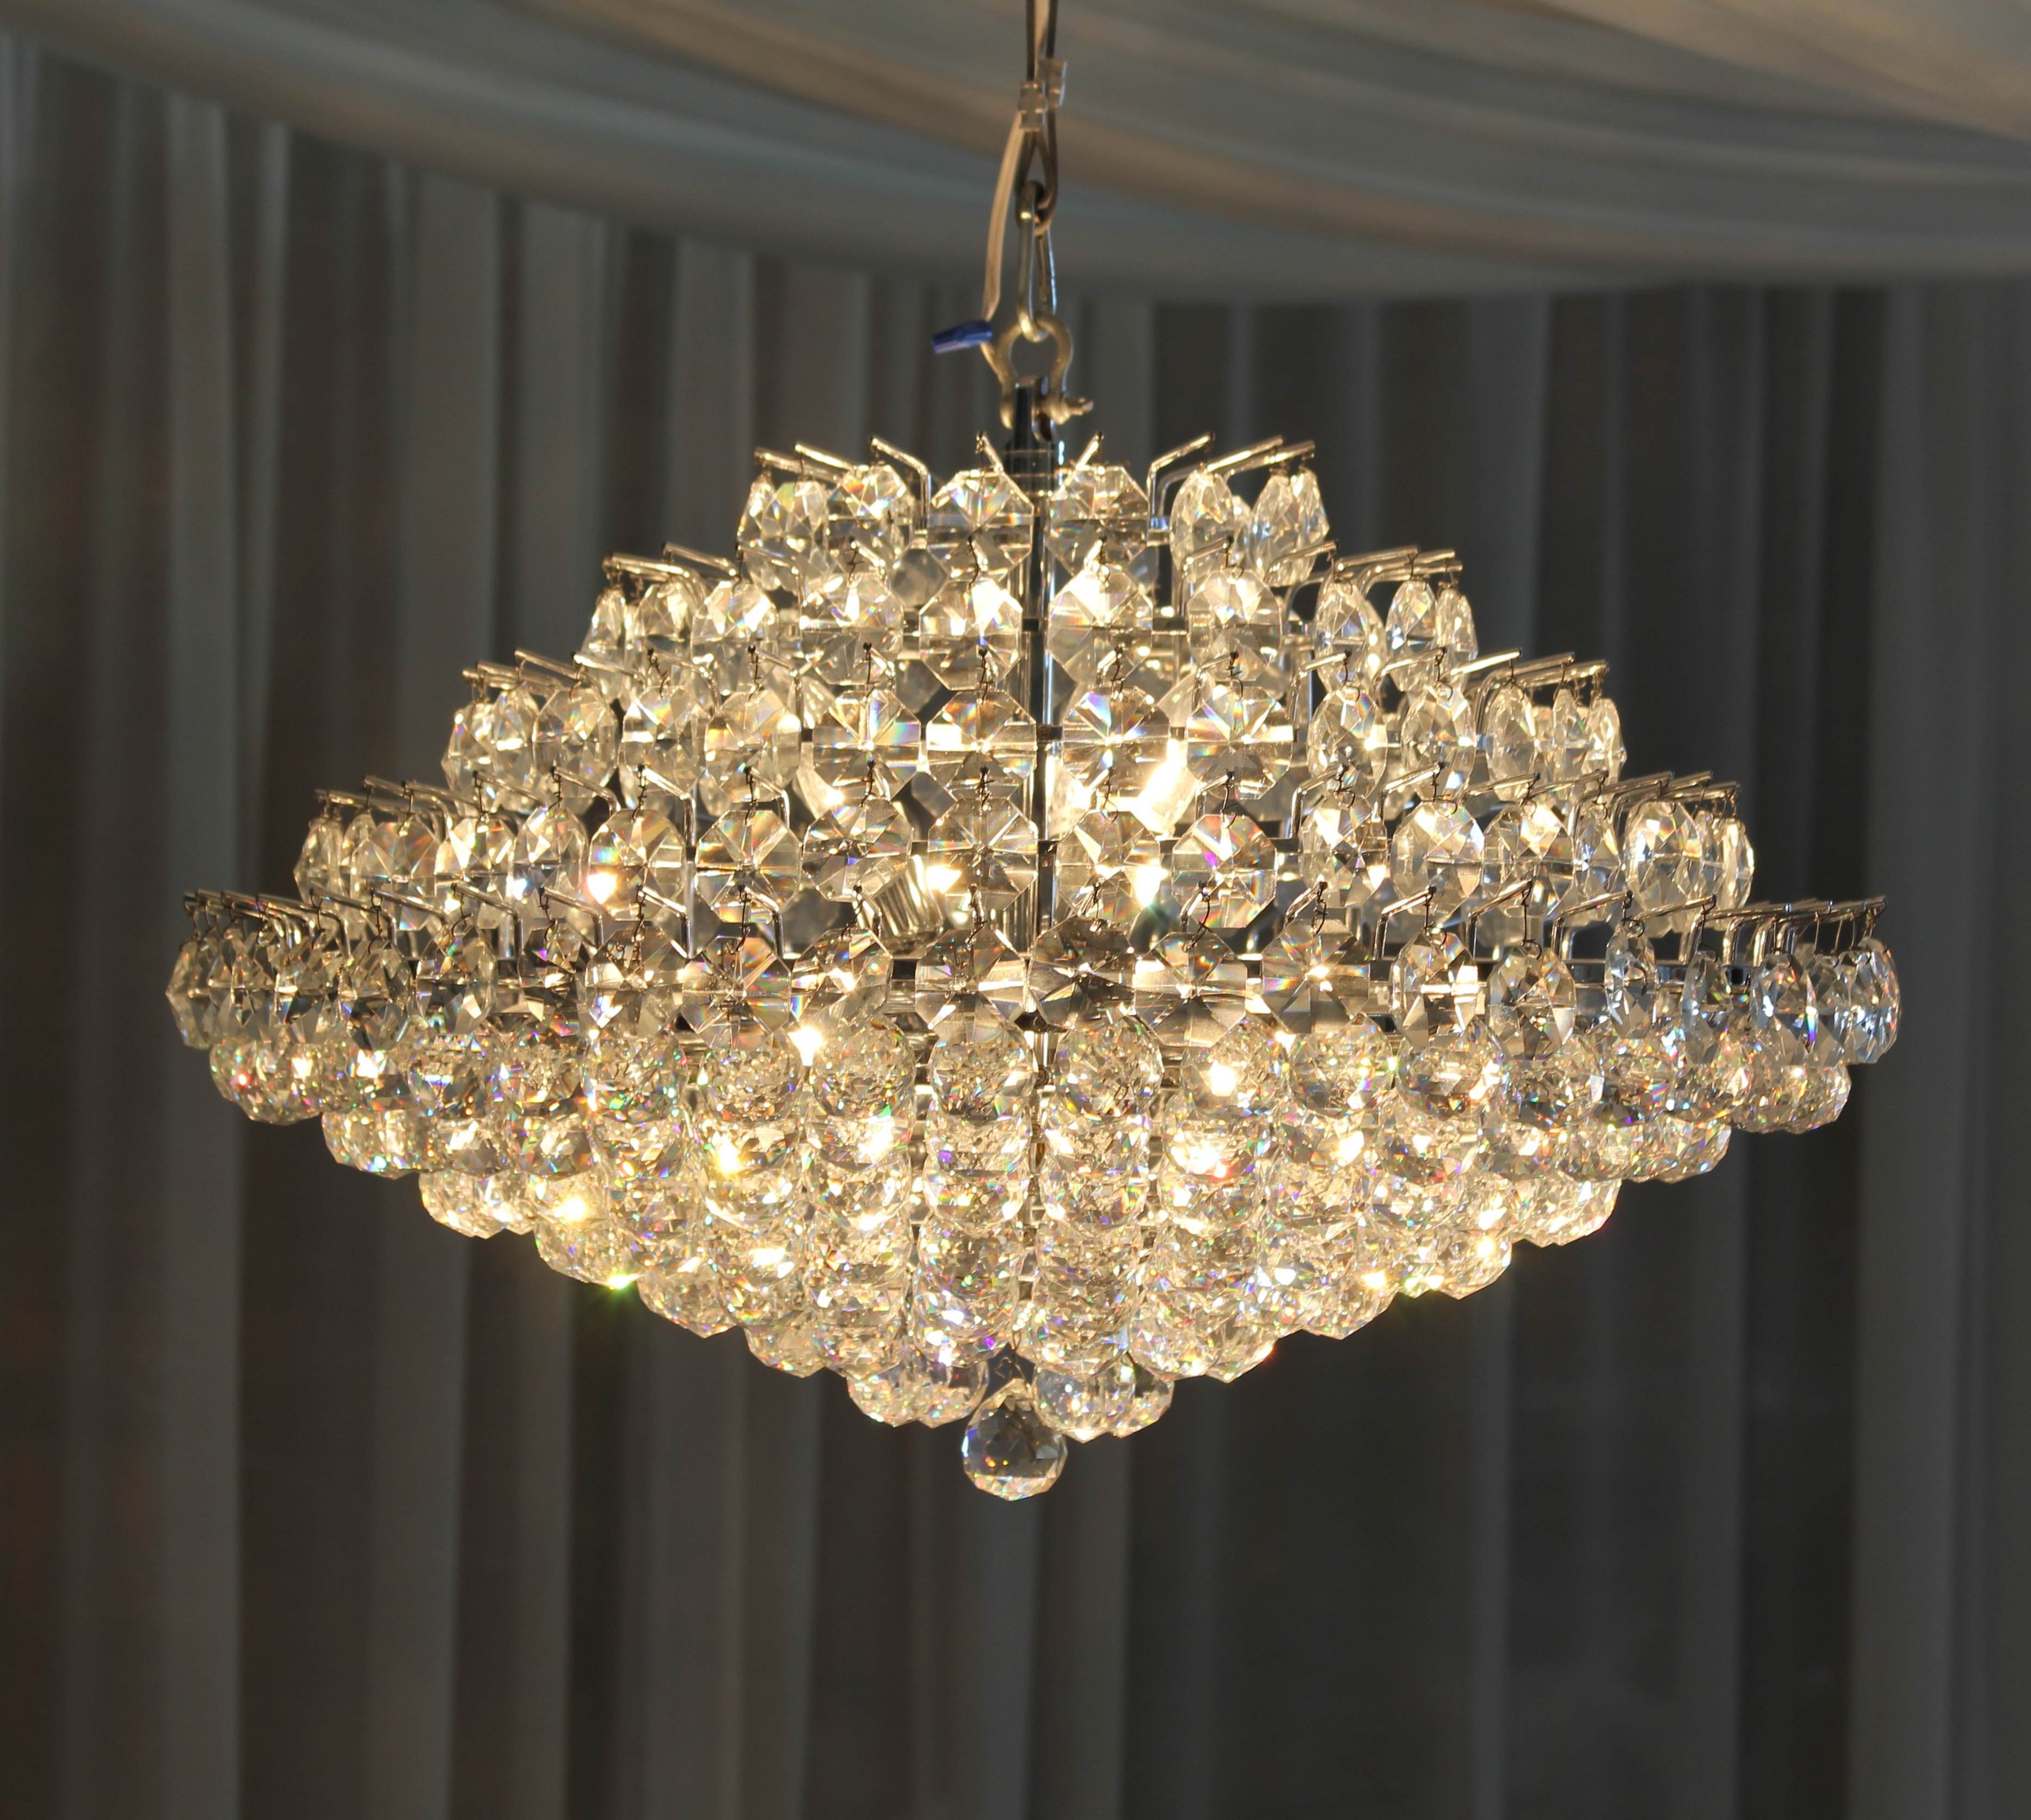 Most Recent Unusual Chandeliers Within Light : Crystal Chandelier Cristal Town Country Event Rentals (View 4 of 15)